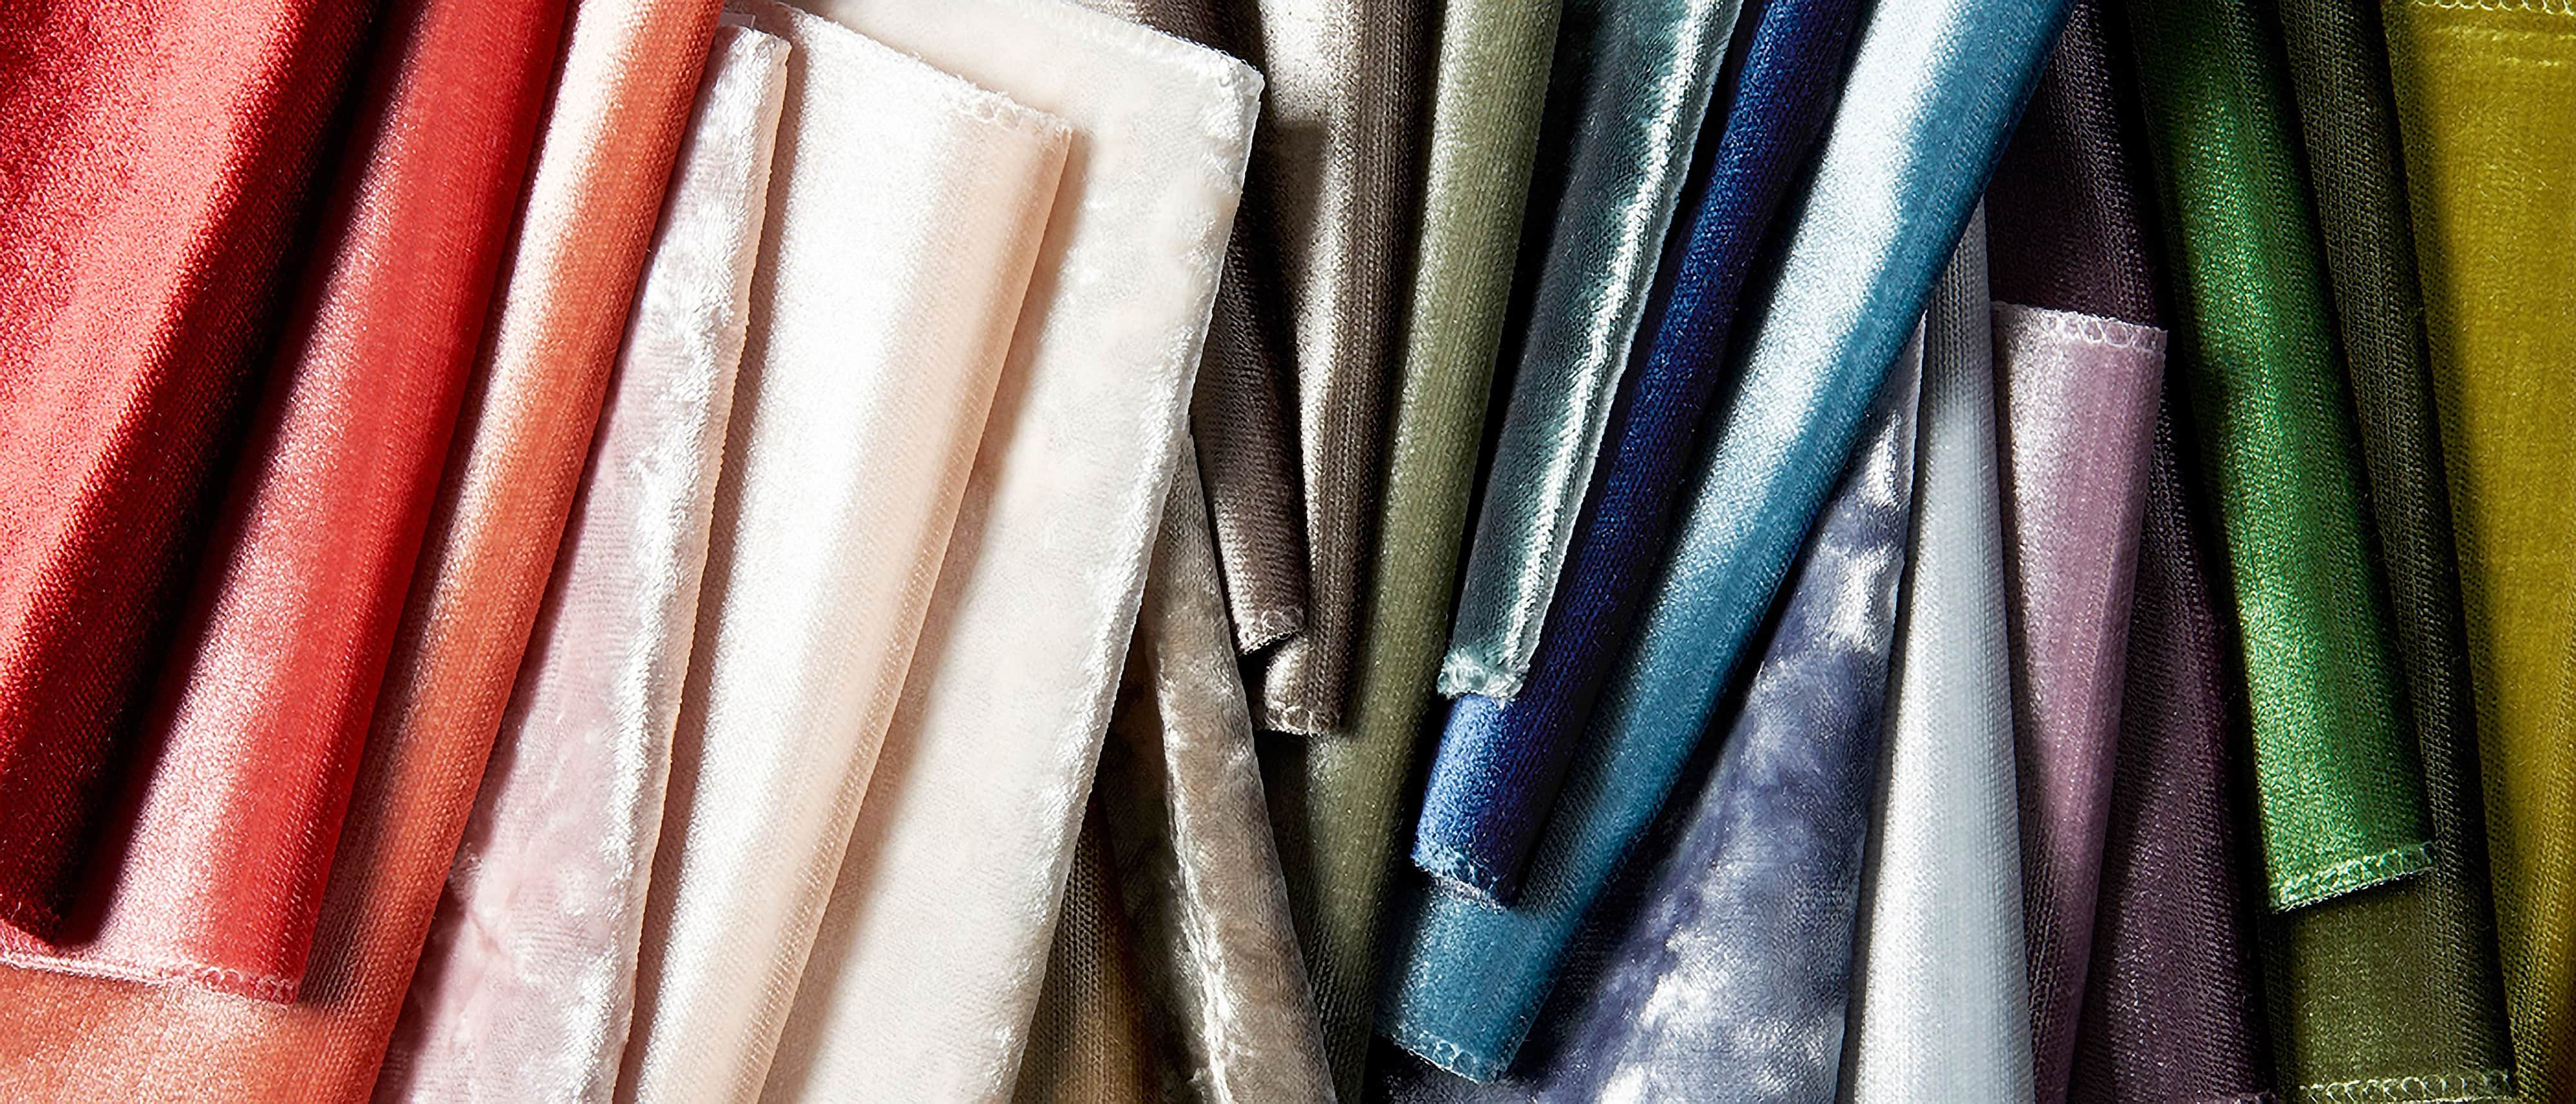 How Many Yards Of Fabric For Curtains Hospitality Fabrics Fabricut Contract